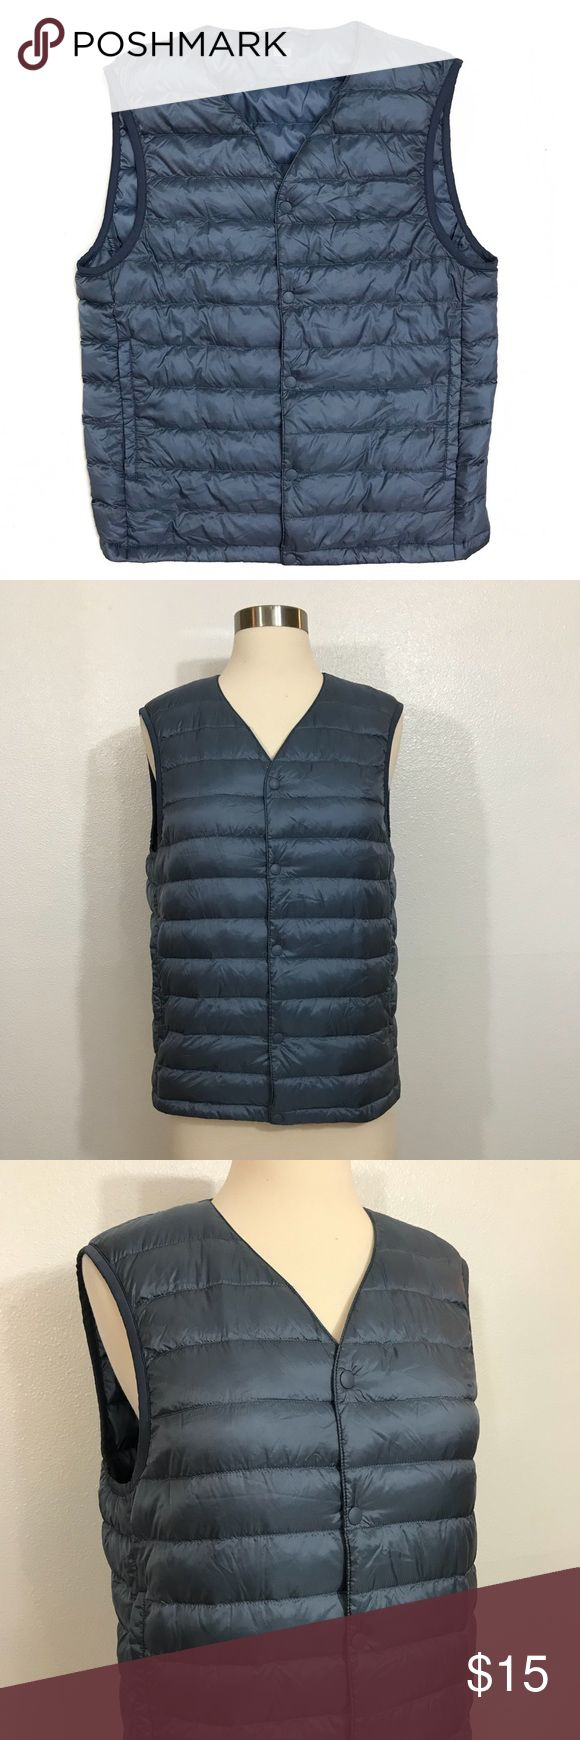 Uniqlo Ultra Light Down Puffer Vest Vest, Uniqlo jackets